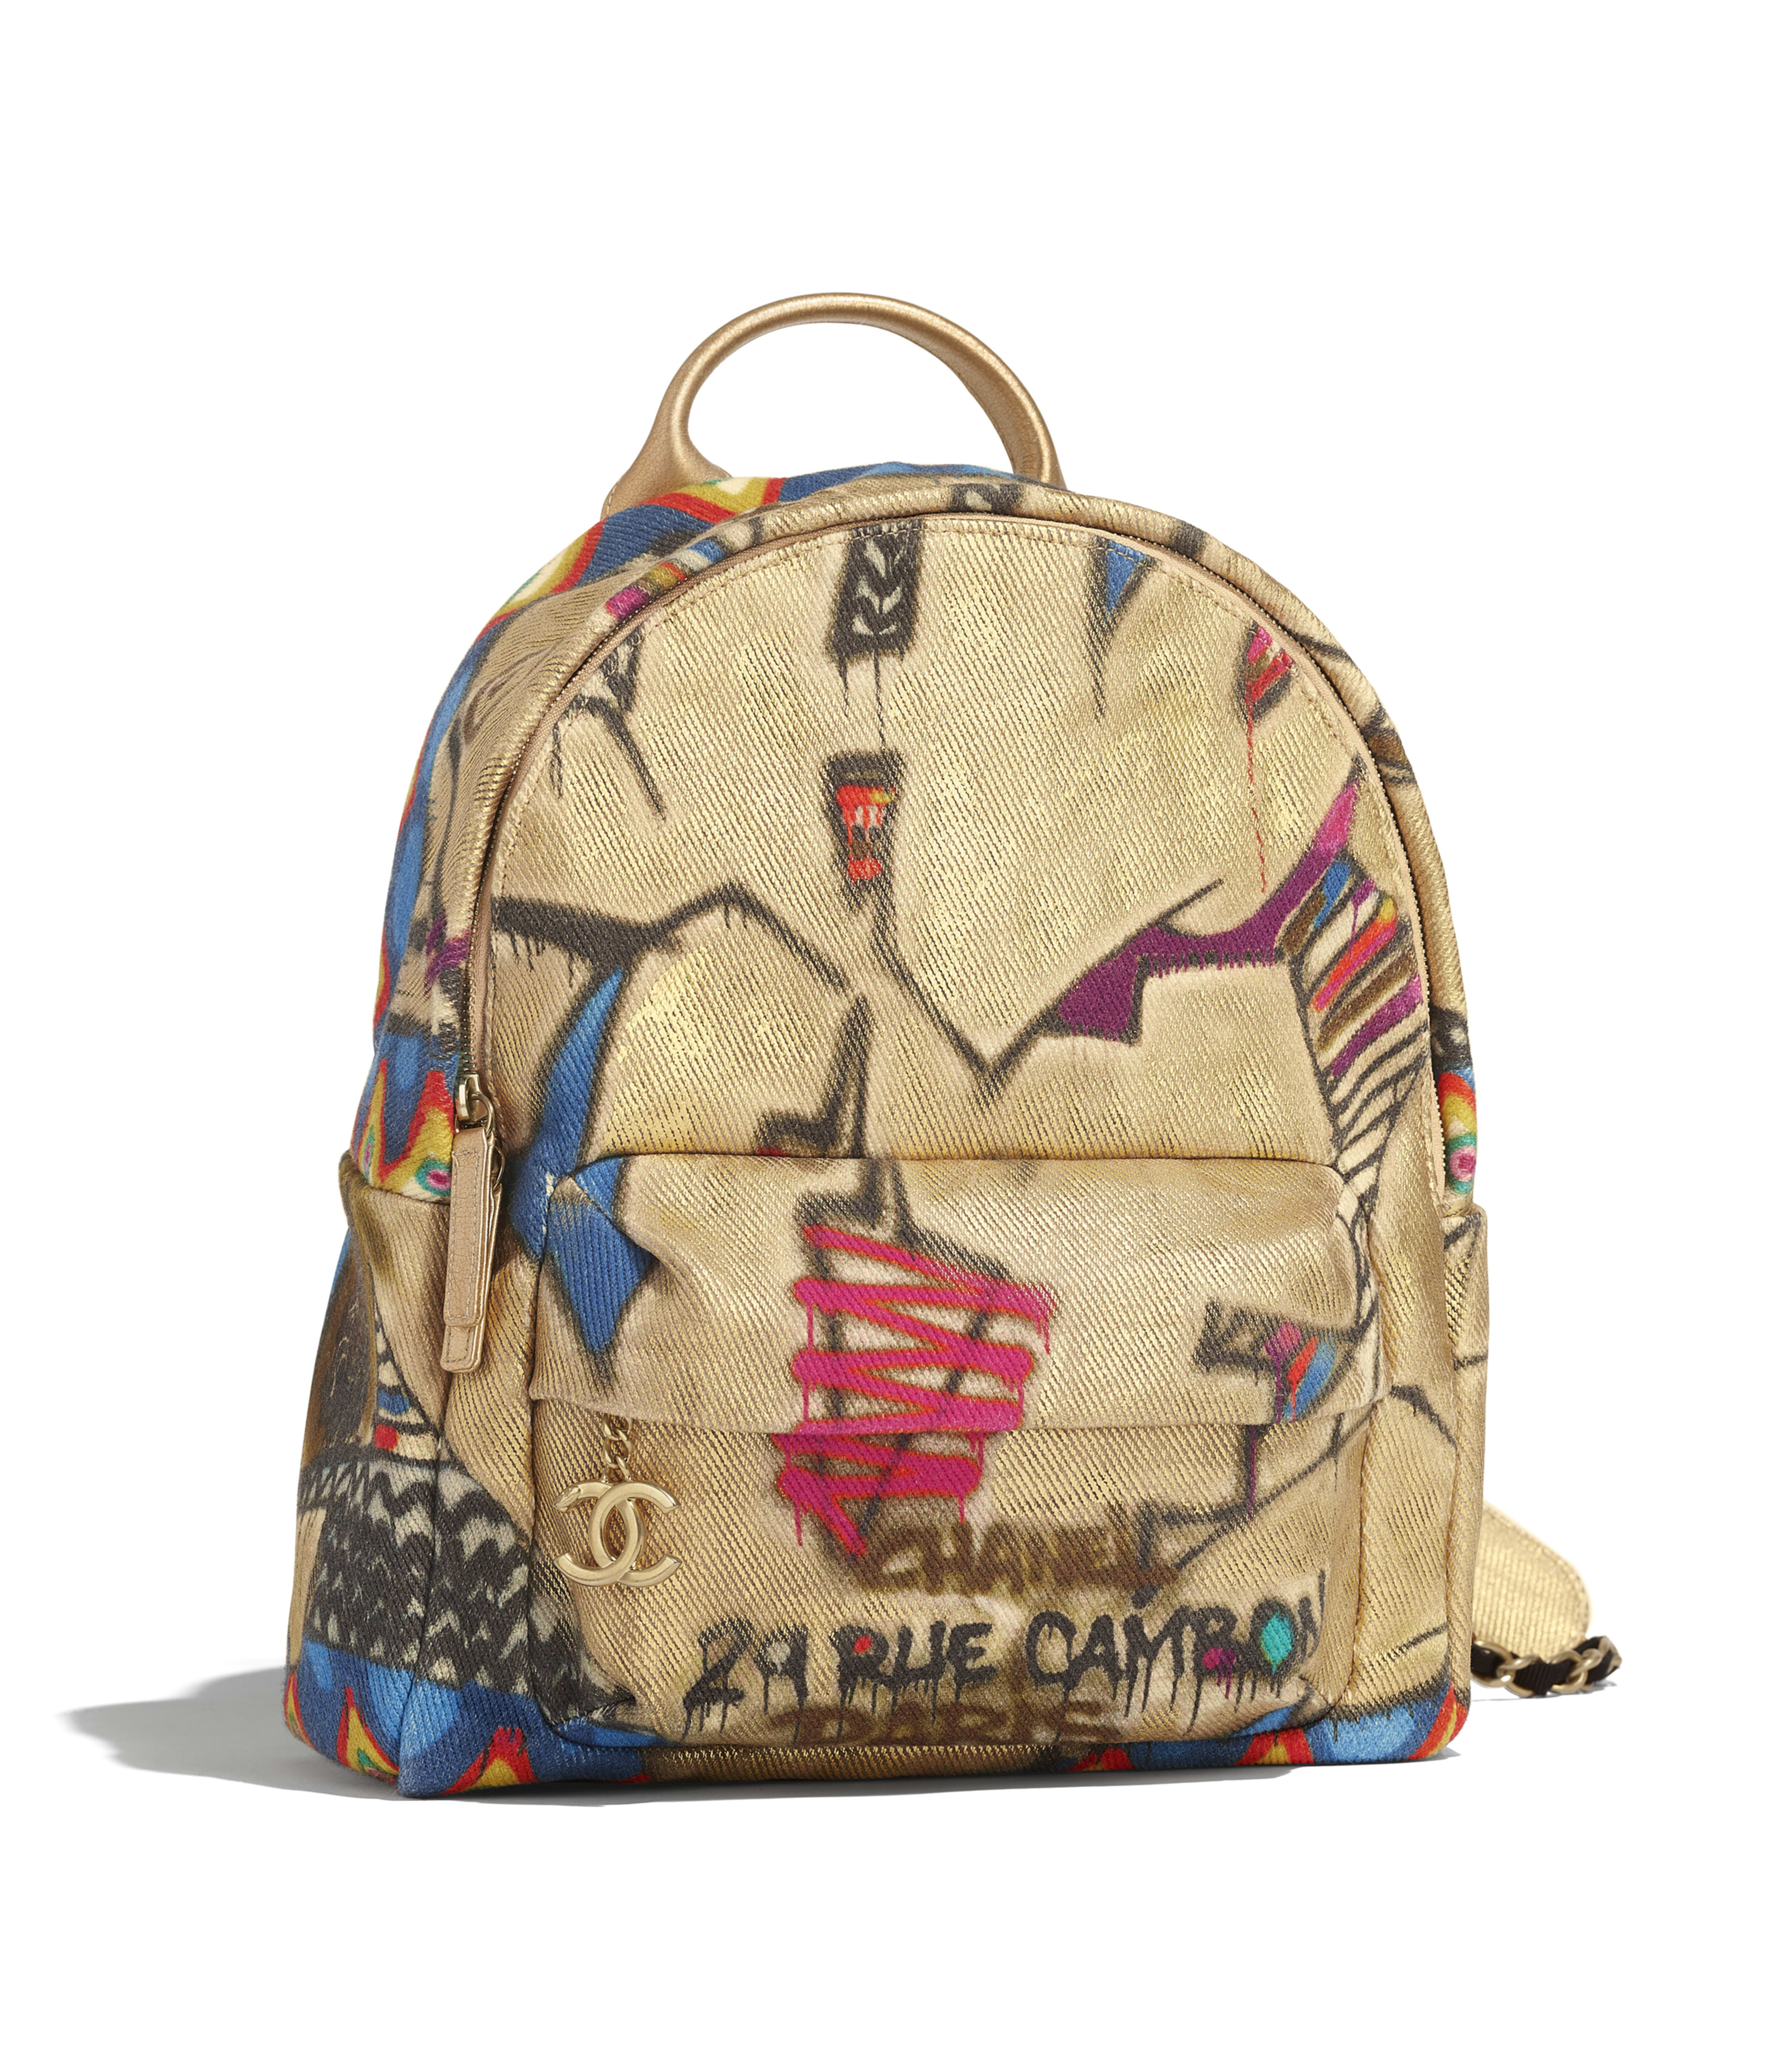 346a76842284 Backpack Calfskin, Cotton & Gold-Tone Metal, Multicolor Ref.  AS0867B0090099999